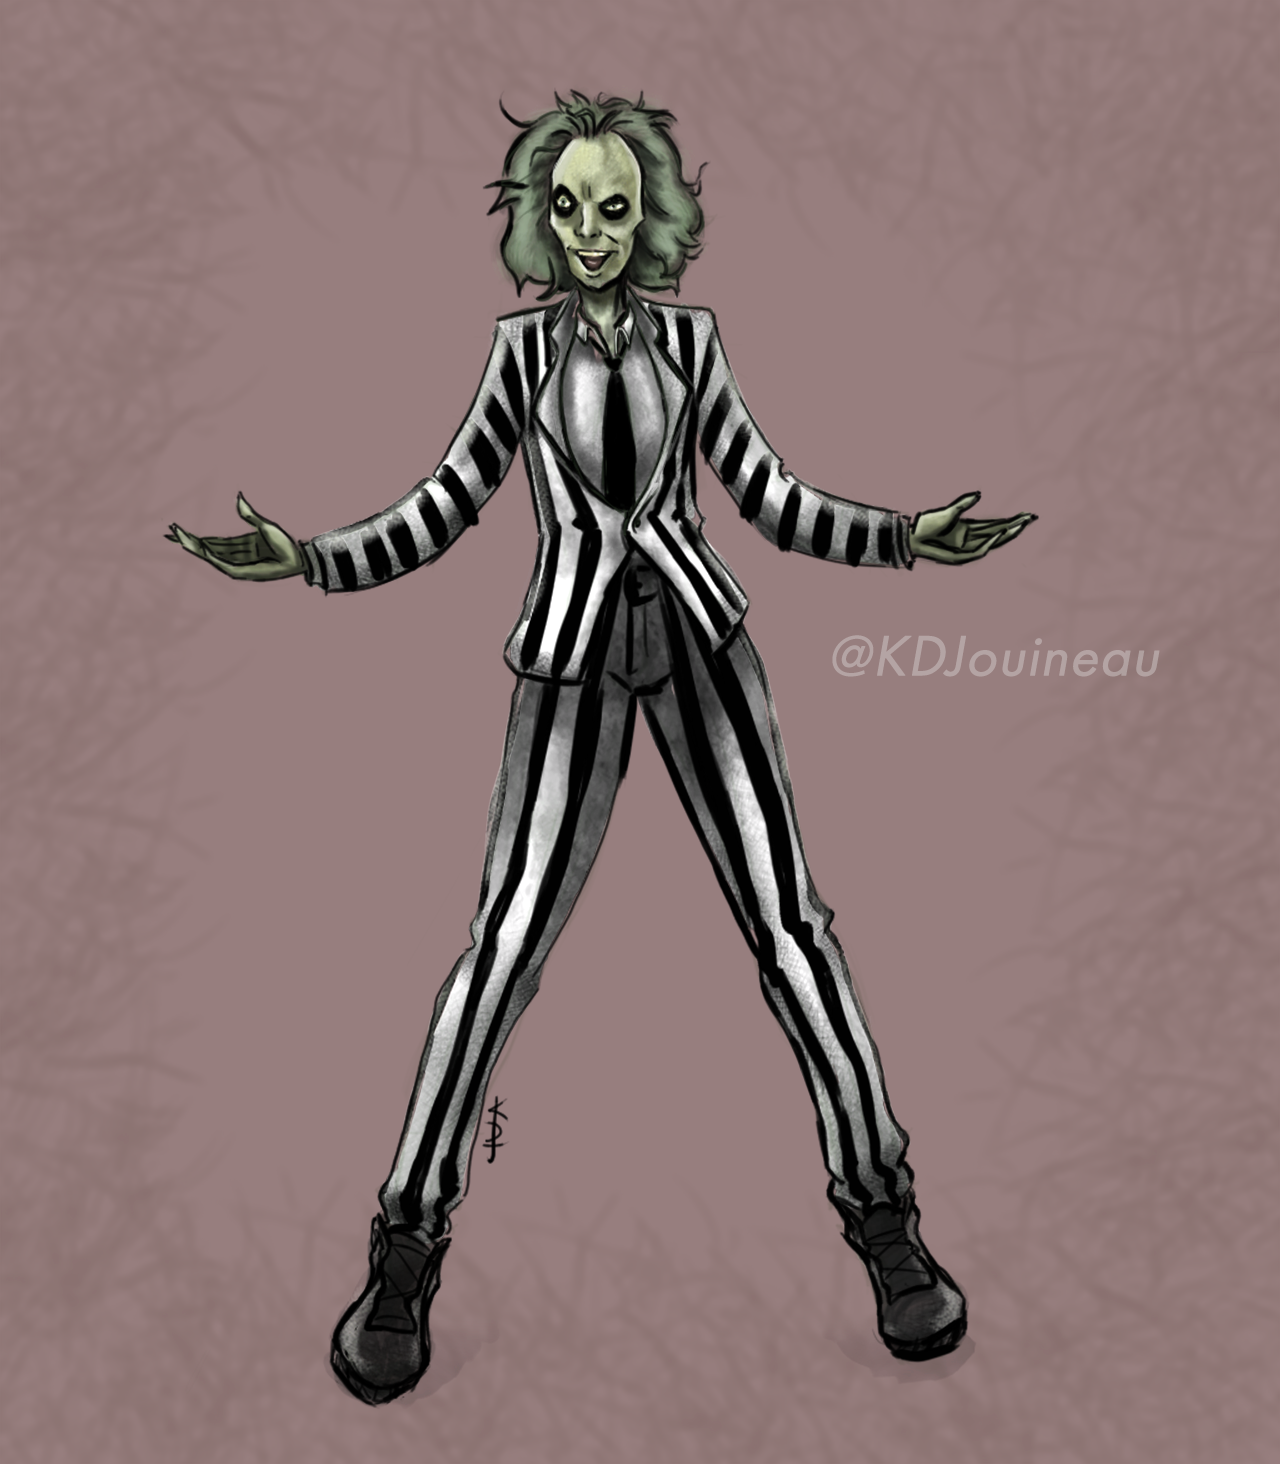 Beetlejuice: Artwork by KDJouineau